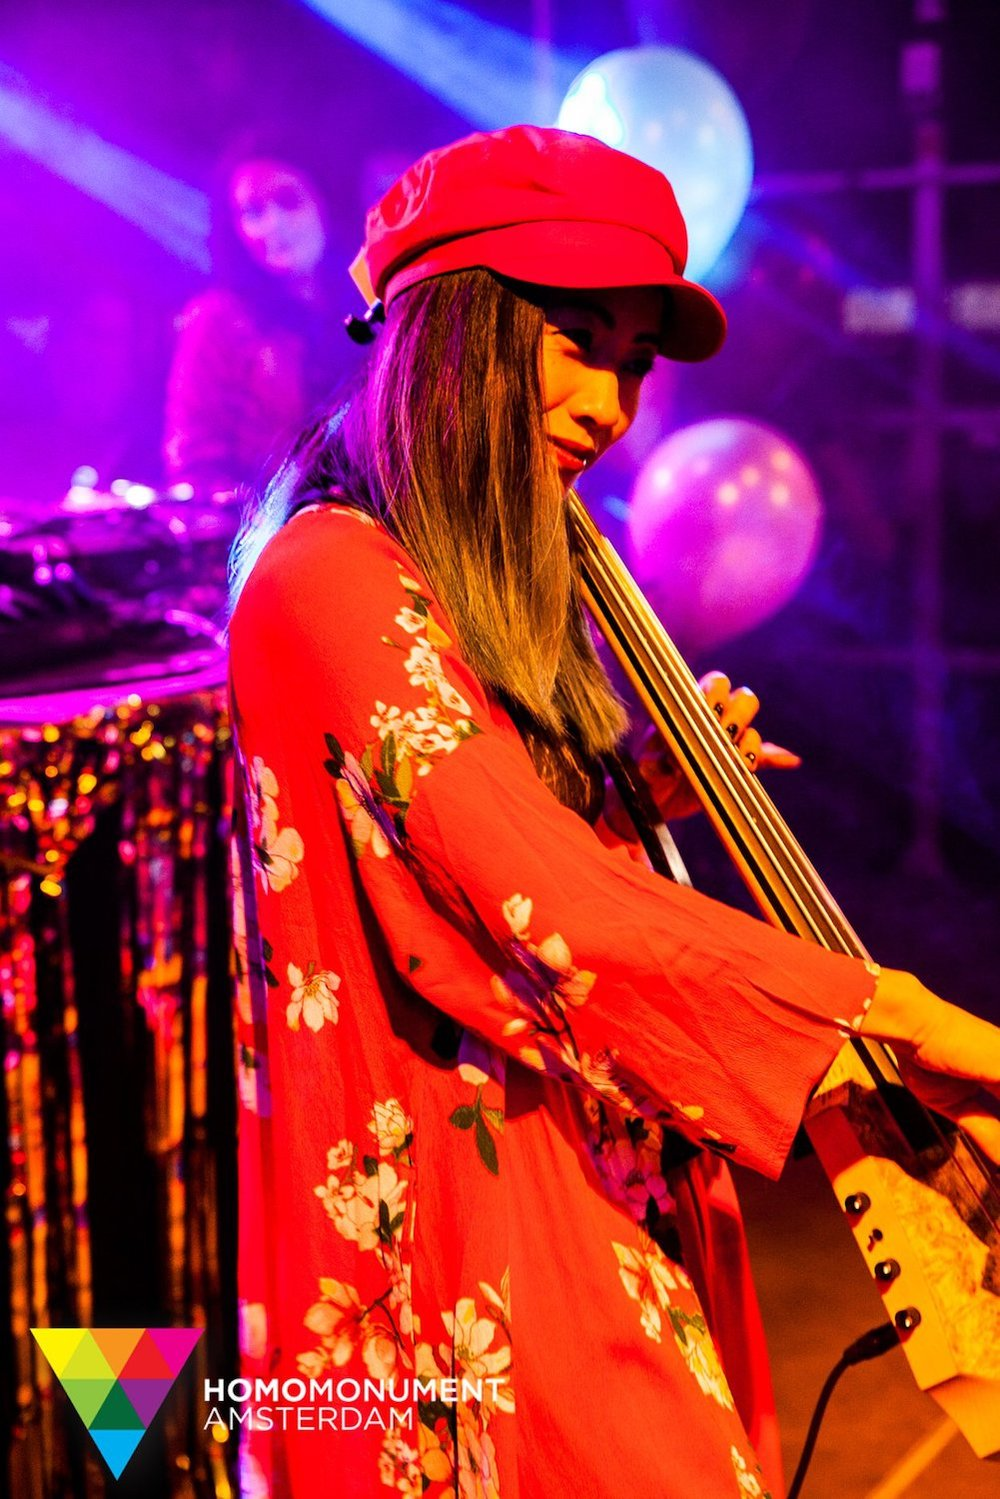 kings-night-festival-2018-homomonument-the-wong-janice-cellist-photo-by-prins-de-vos-ns-design-CR5-electric-cello-3.jpg